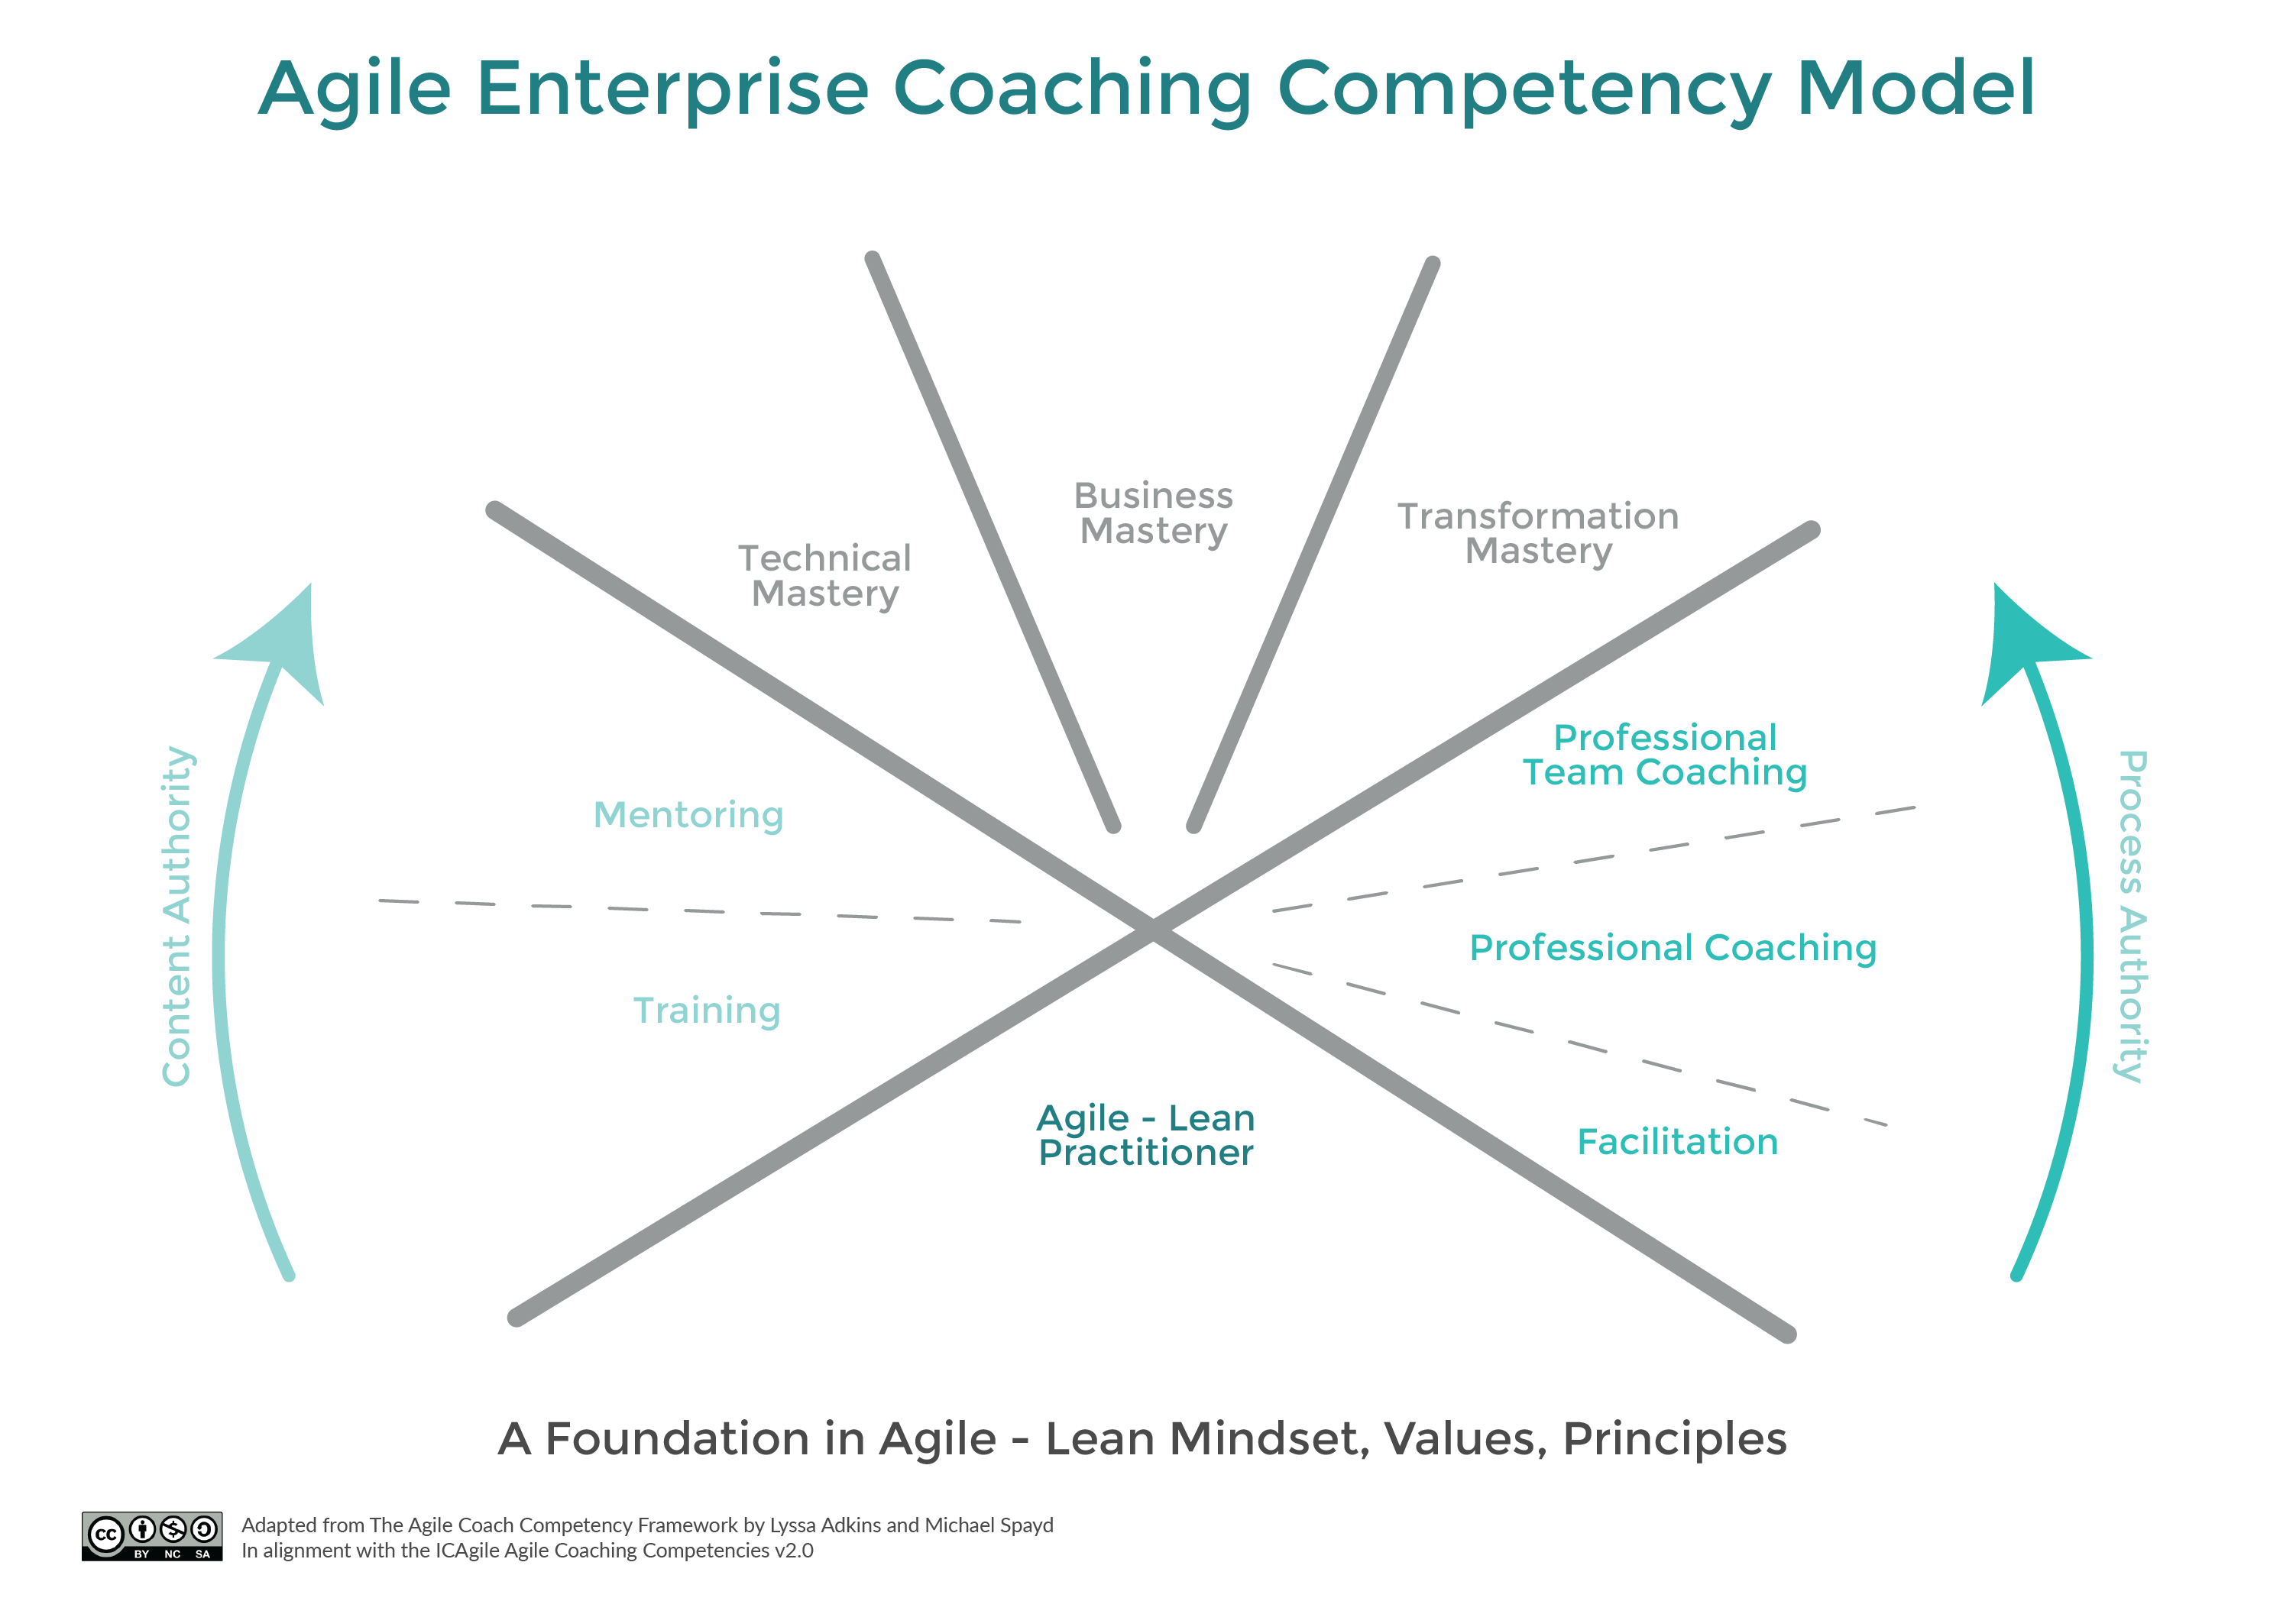 Agile Enterprise Coaching Competency Model by Centre for Agile Coaching. Text on image is available in the content of this webpage.